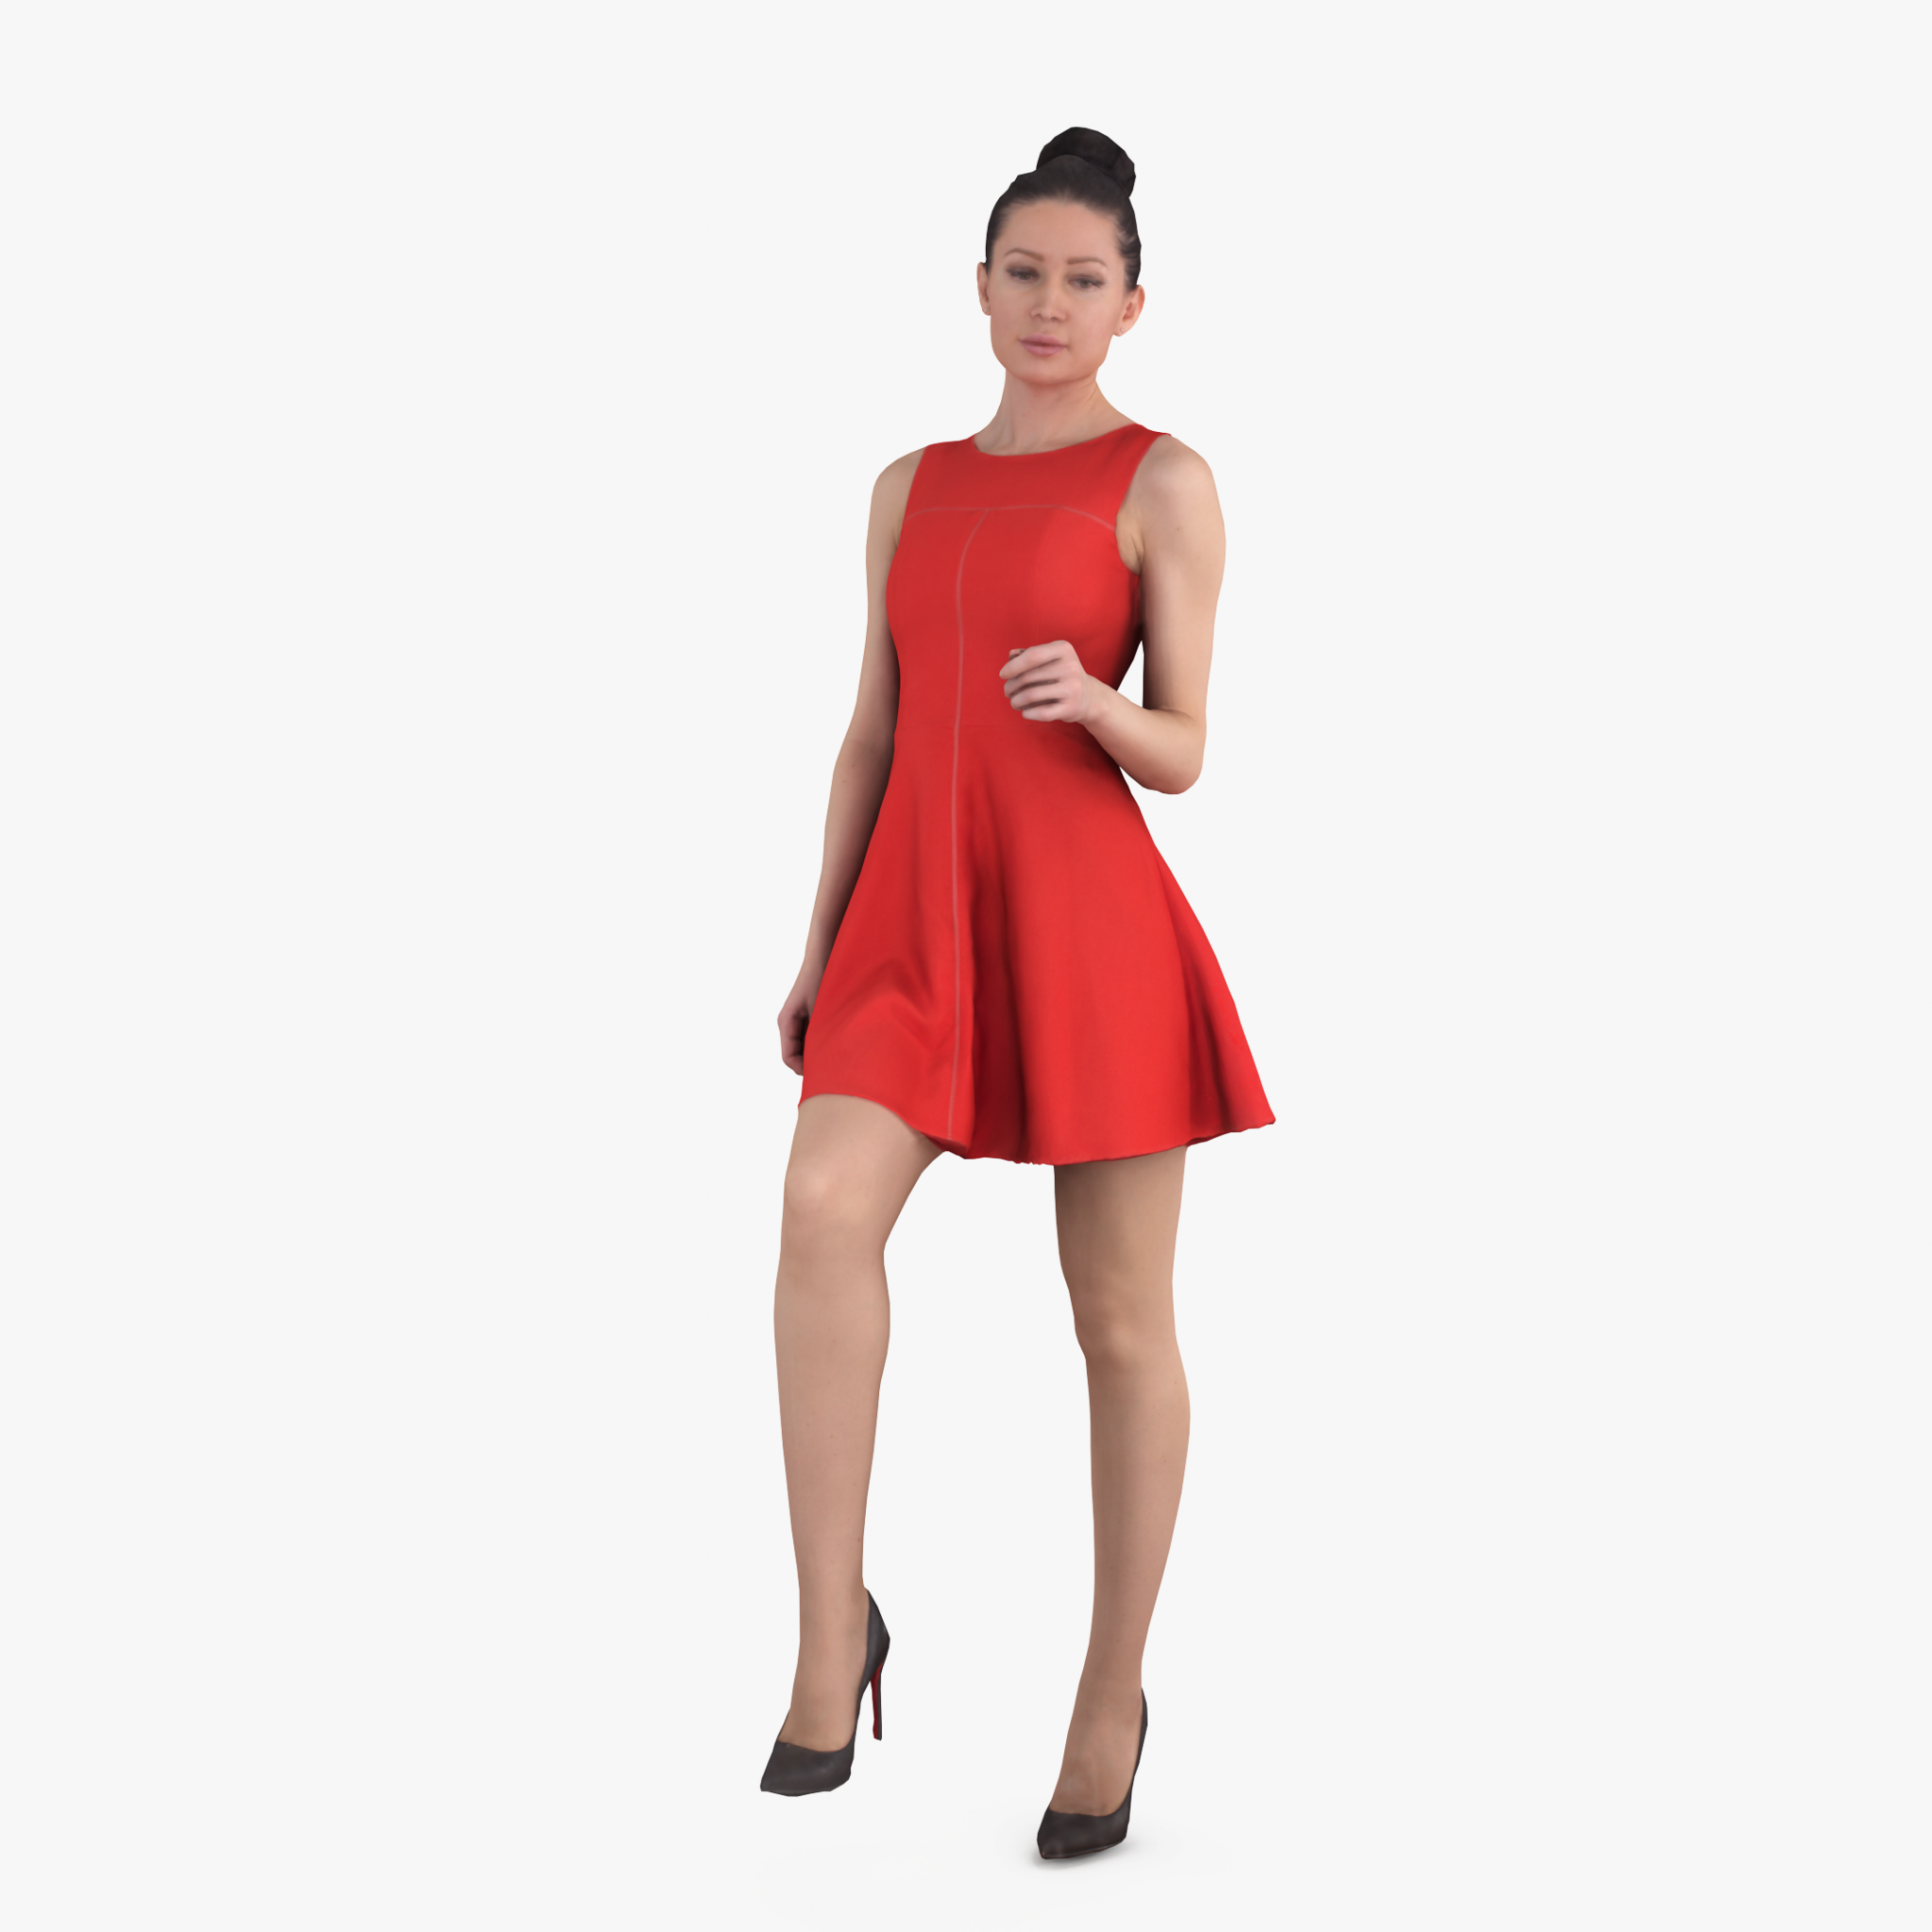 Lady in Red Standing 3D Model   3DTree Scanning Studio